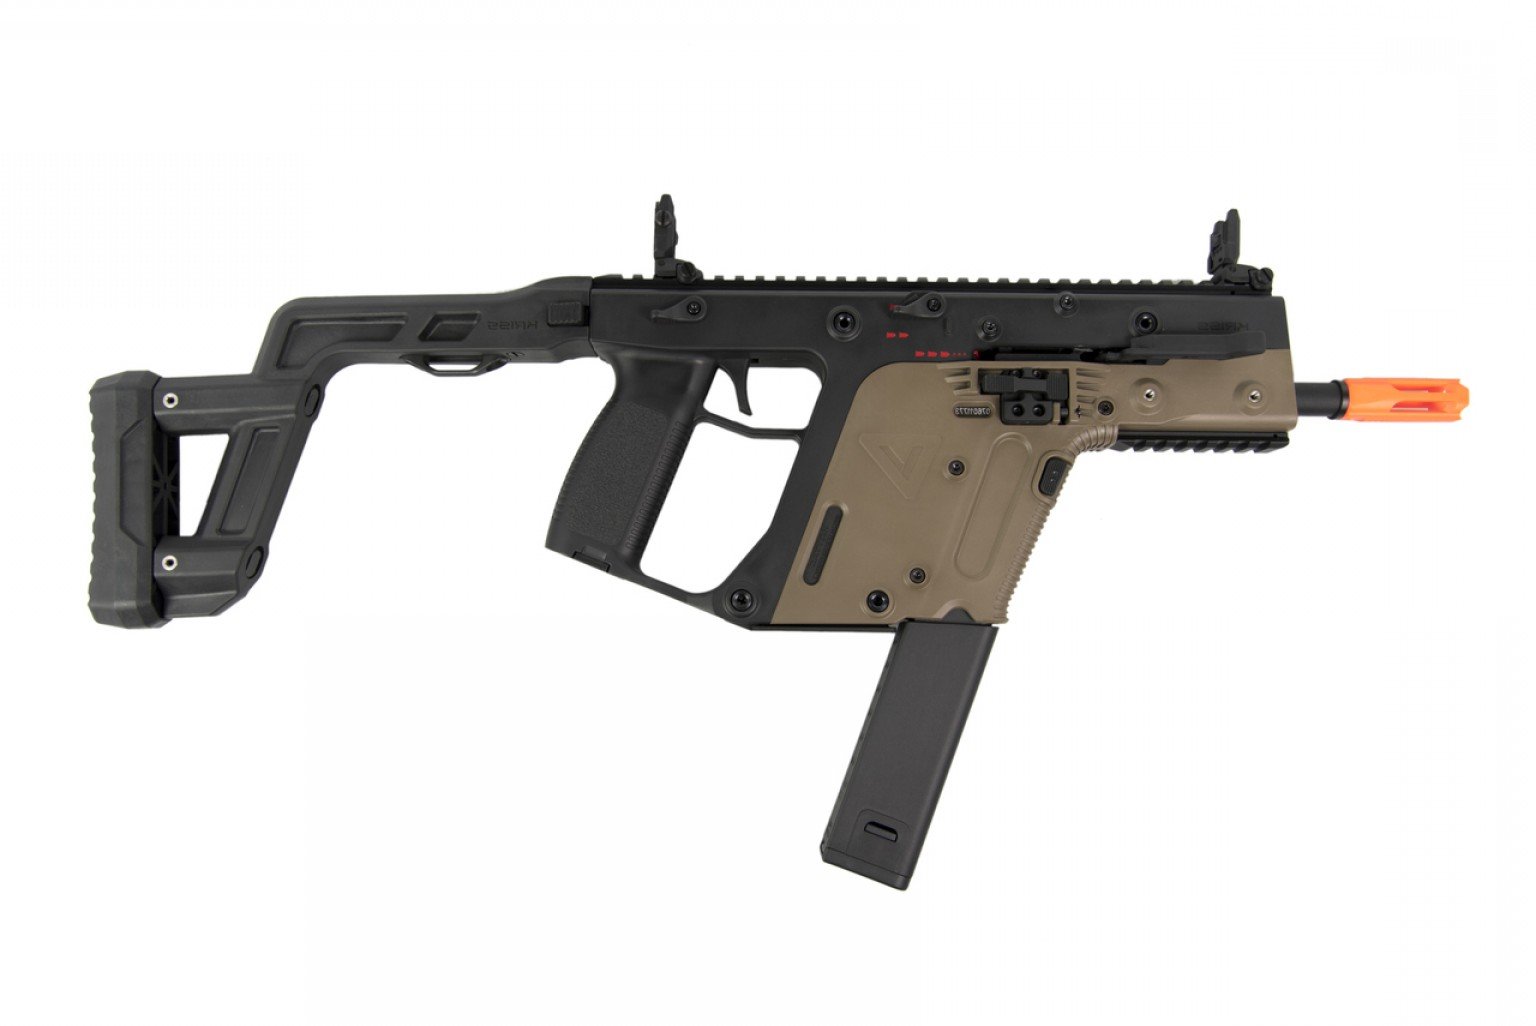 New Kriss Vector: Krytac Kriss Usa Licensed Kriss Vector Aeg Smg Two Tone